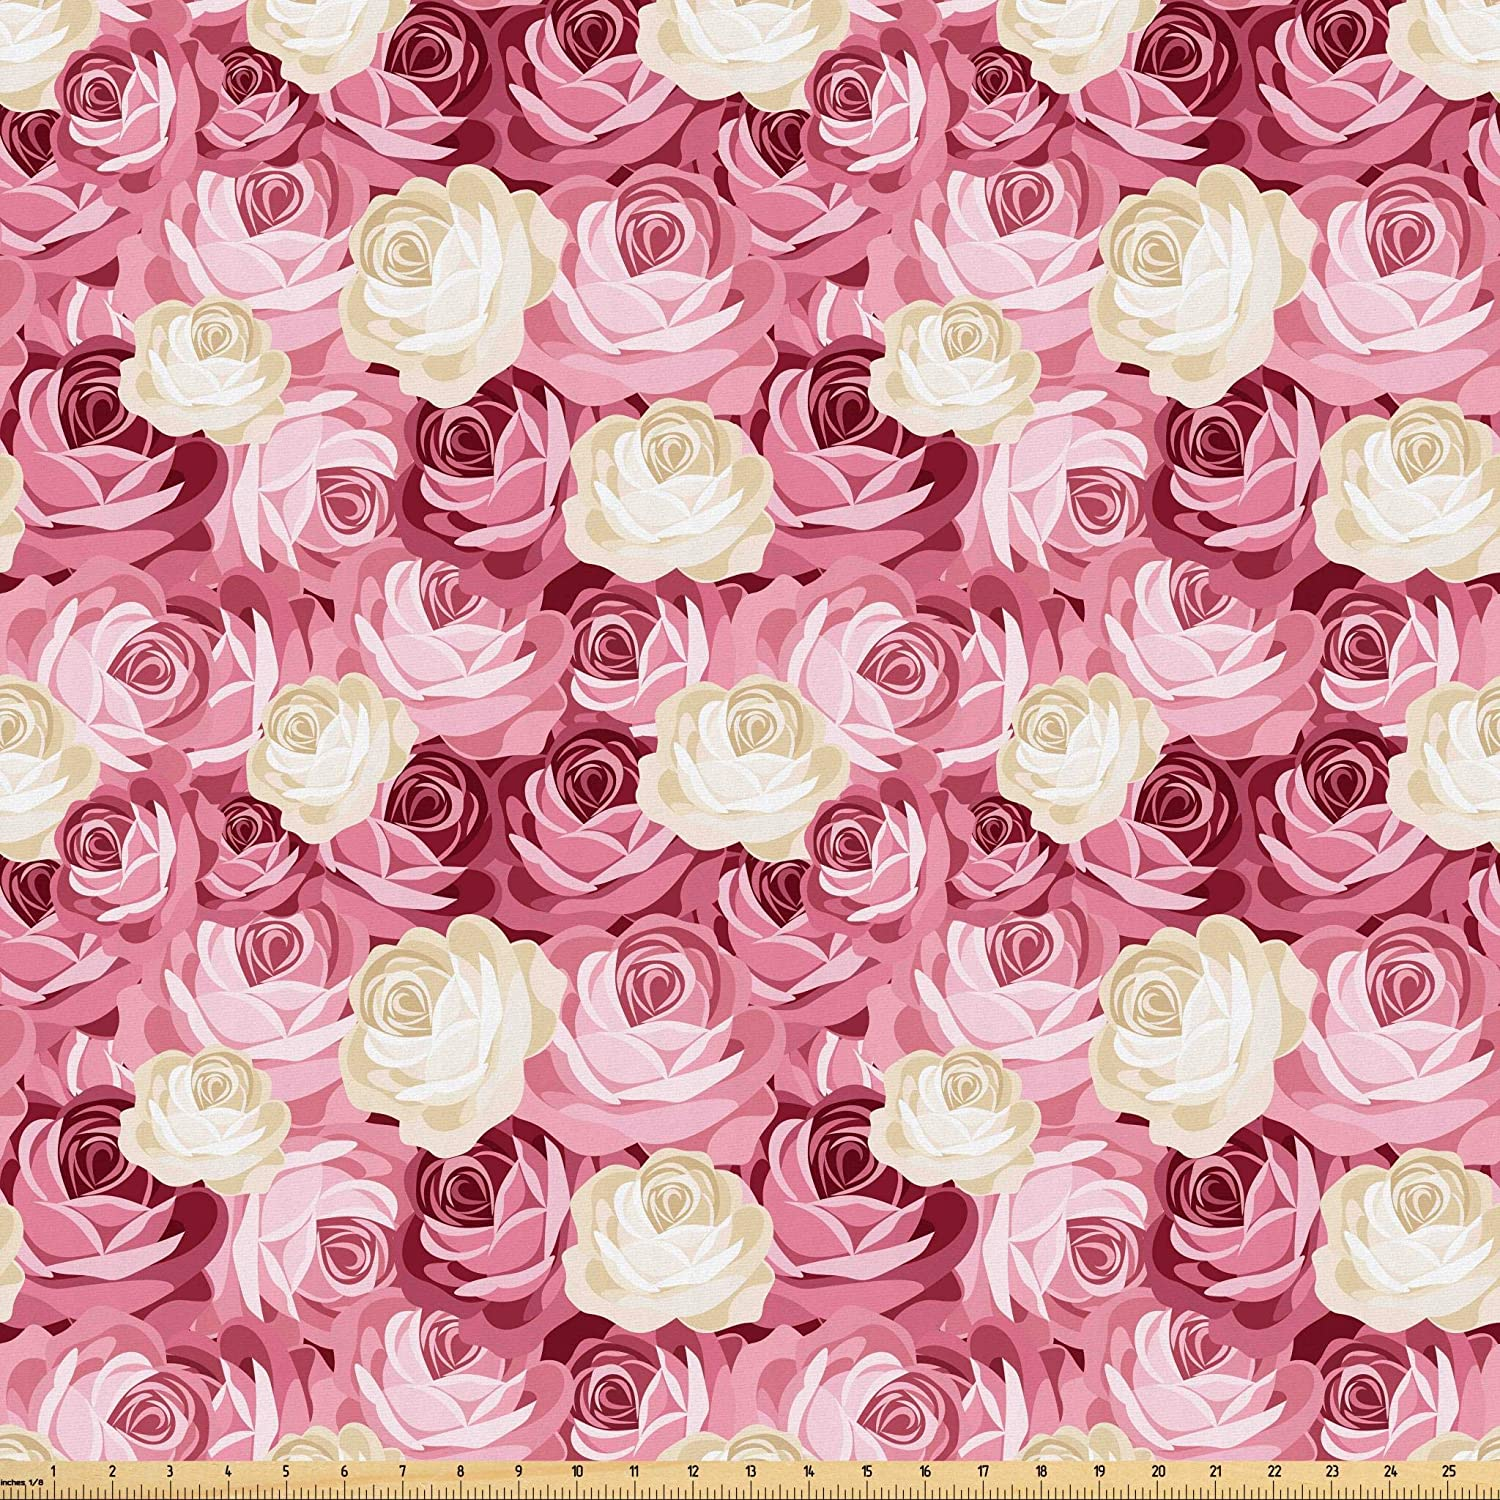 Lunarable Roses Fabric by The Yard, Feminine Pattern Victorian Gardens Inspired Vintage Floral Pastel Colored Arrangement, Microfiber Fabric for Arts and Crafts Textiles & Decor, 1 Yard, Cream Pink